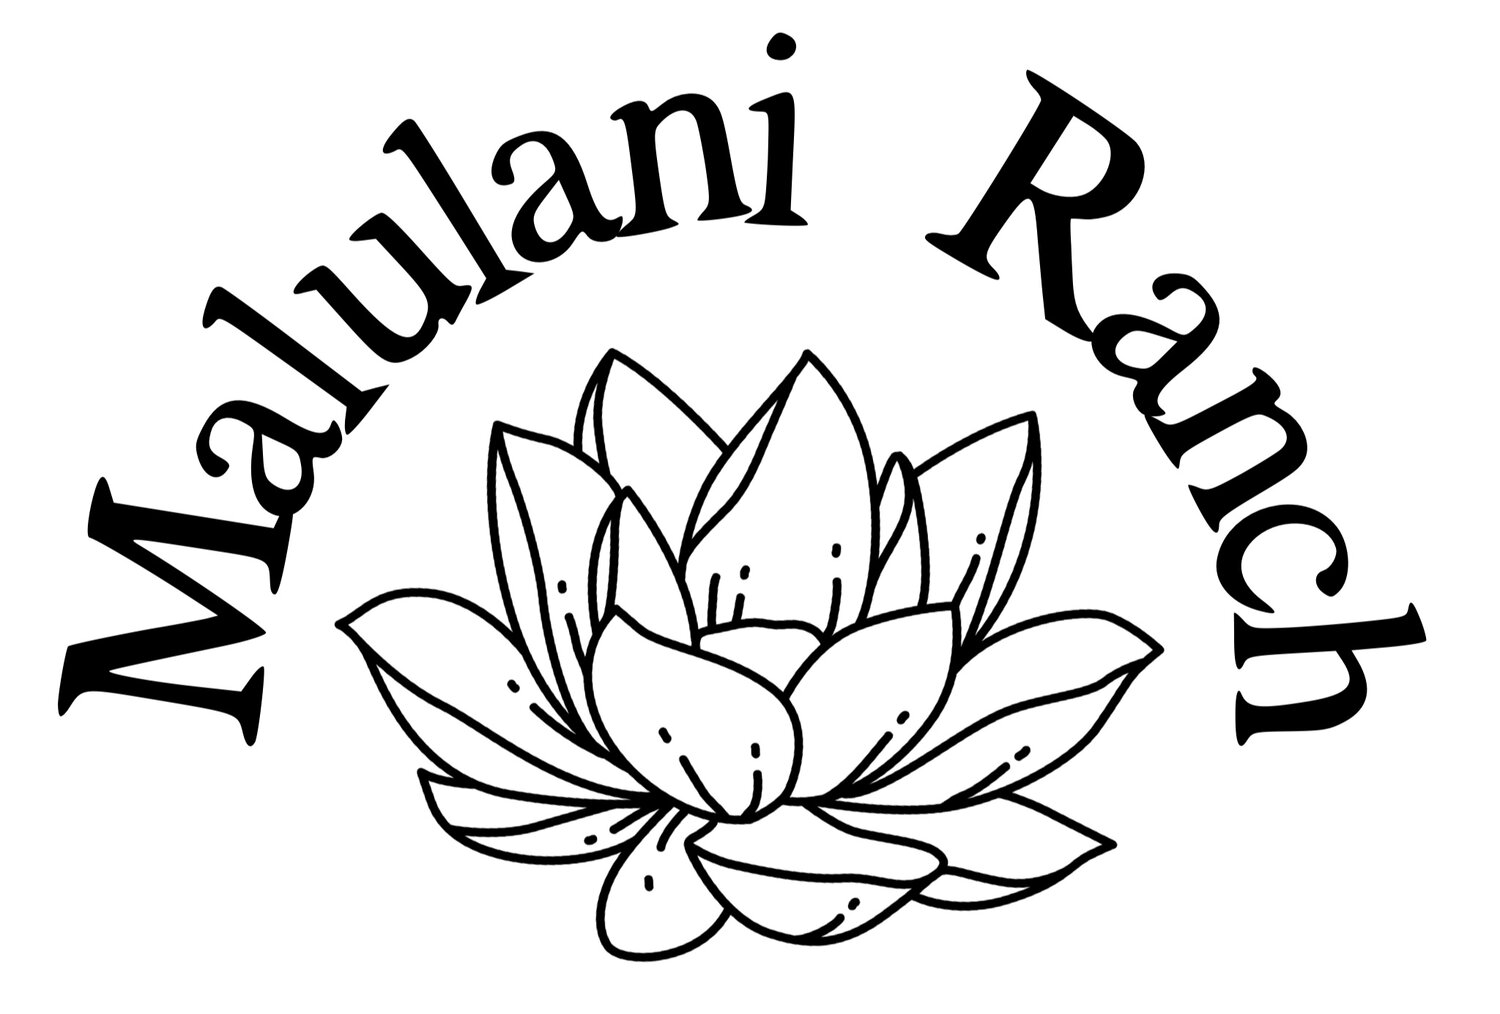 Malulani Ranch